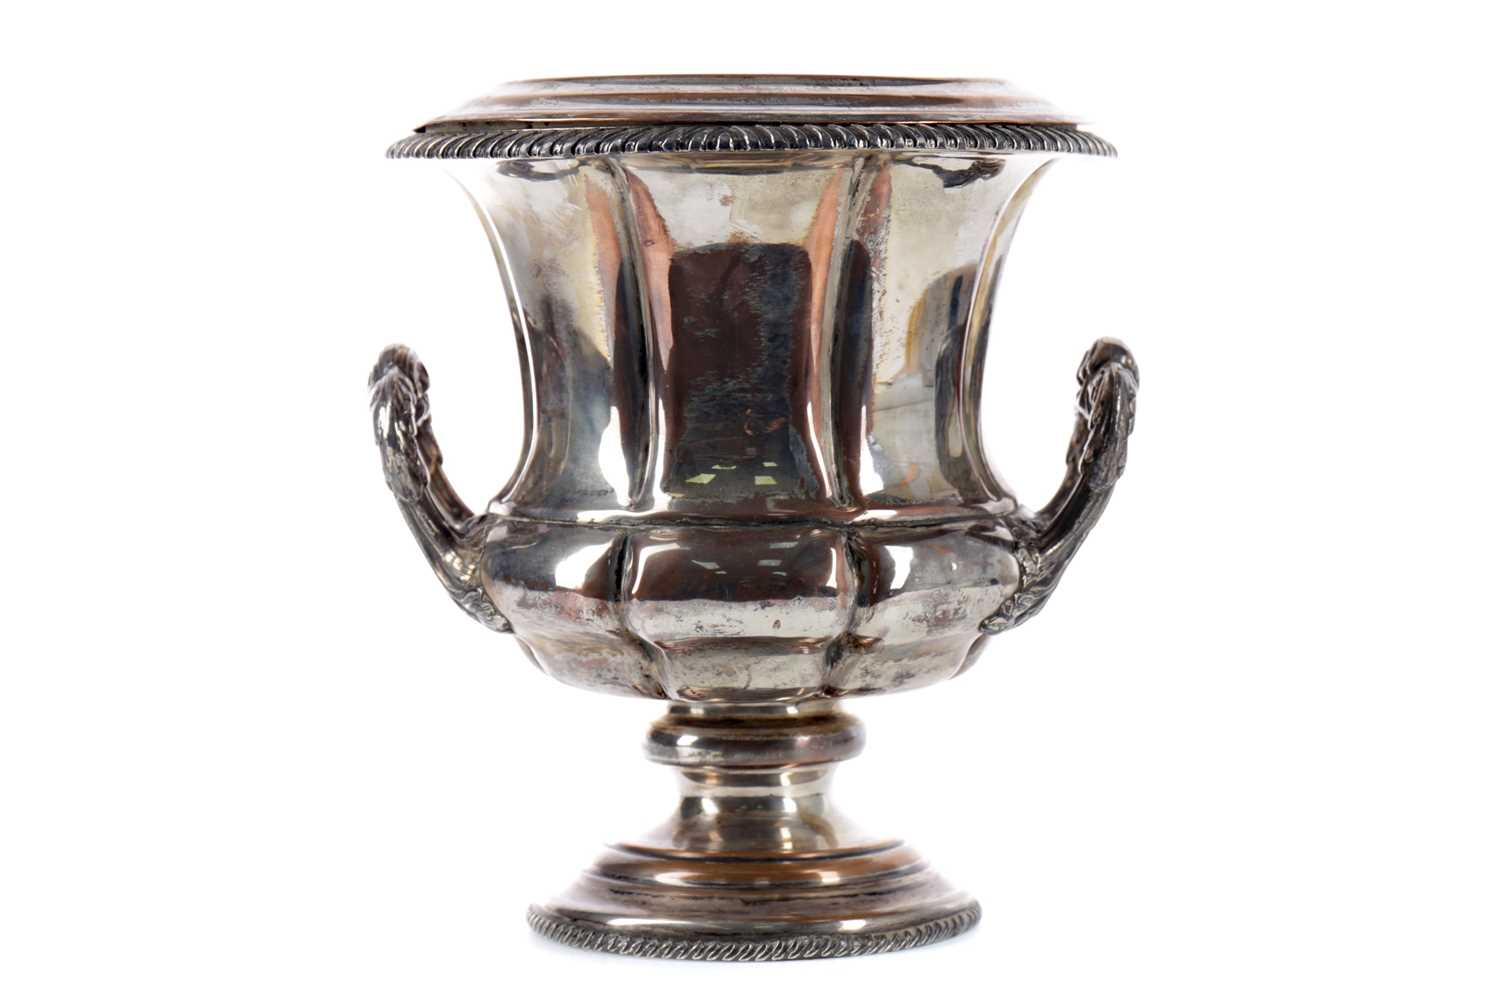 Lot 77 - A MID-19TH CENTURY OLD SHEFFIELD PLATE WINE COOLER